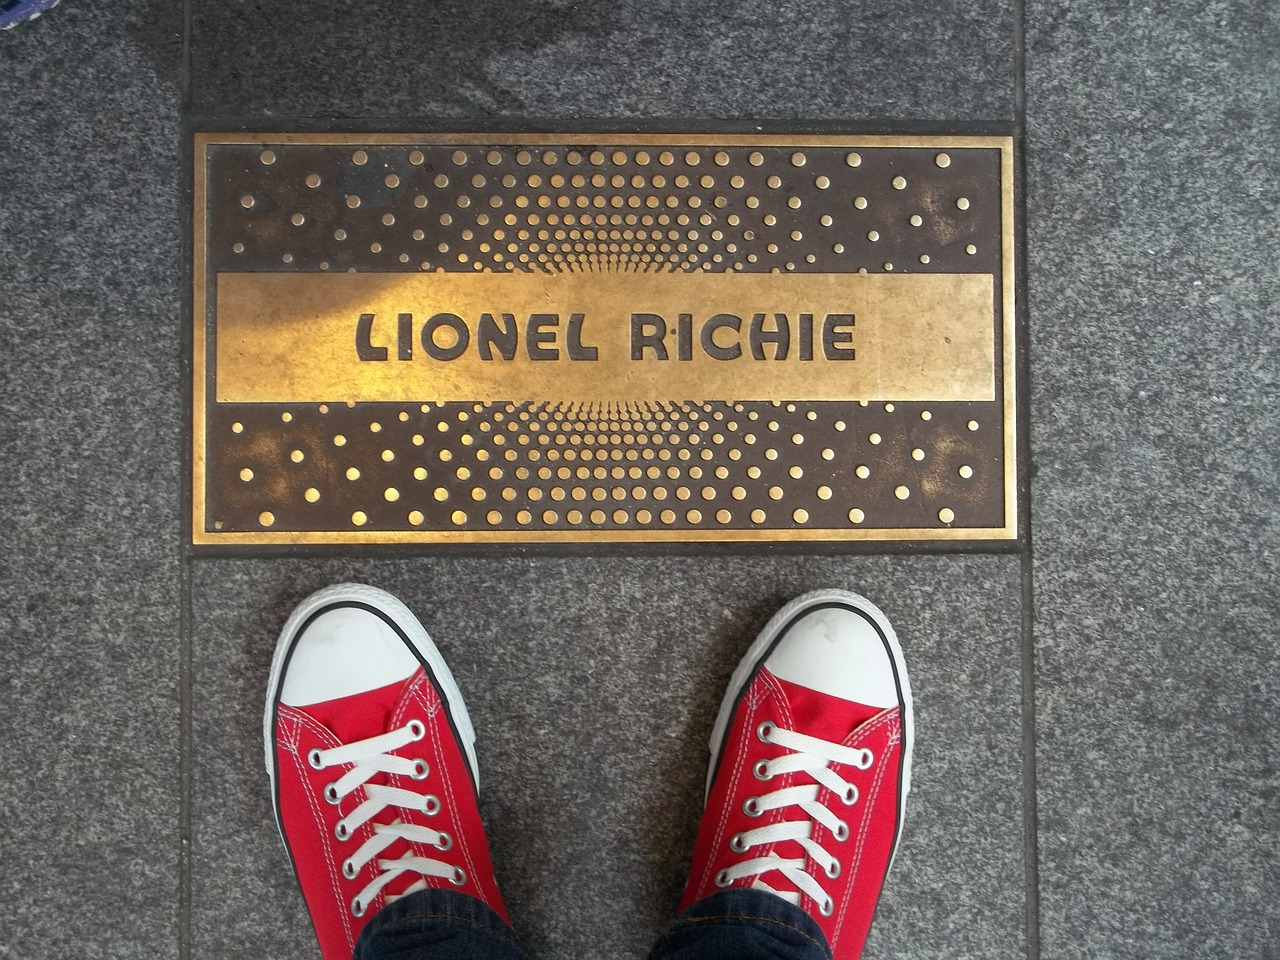 Lionel Richie Plaque.jpg